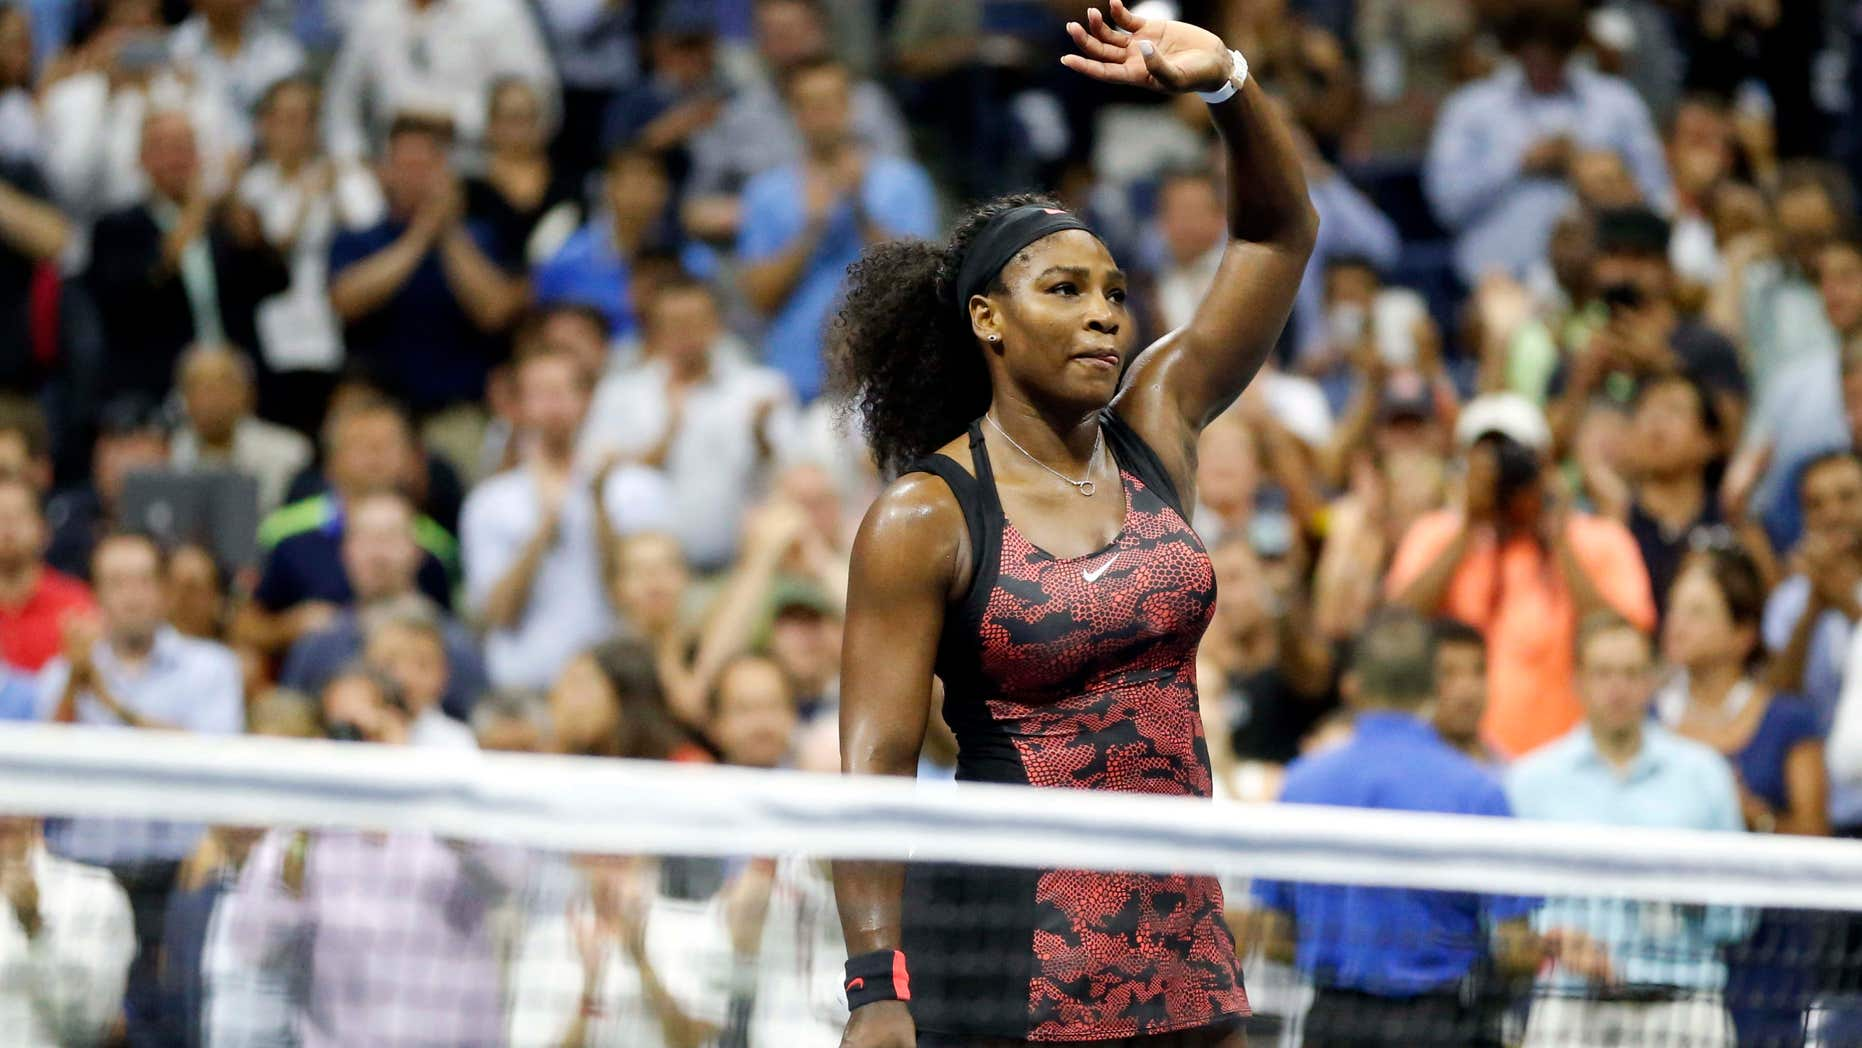 Sept. 8, 2015: Serena Williams waves to the crowd after beating Venus Williams during a quarterfinal match at the U.S. Open tennis tournament in New York.